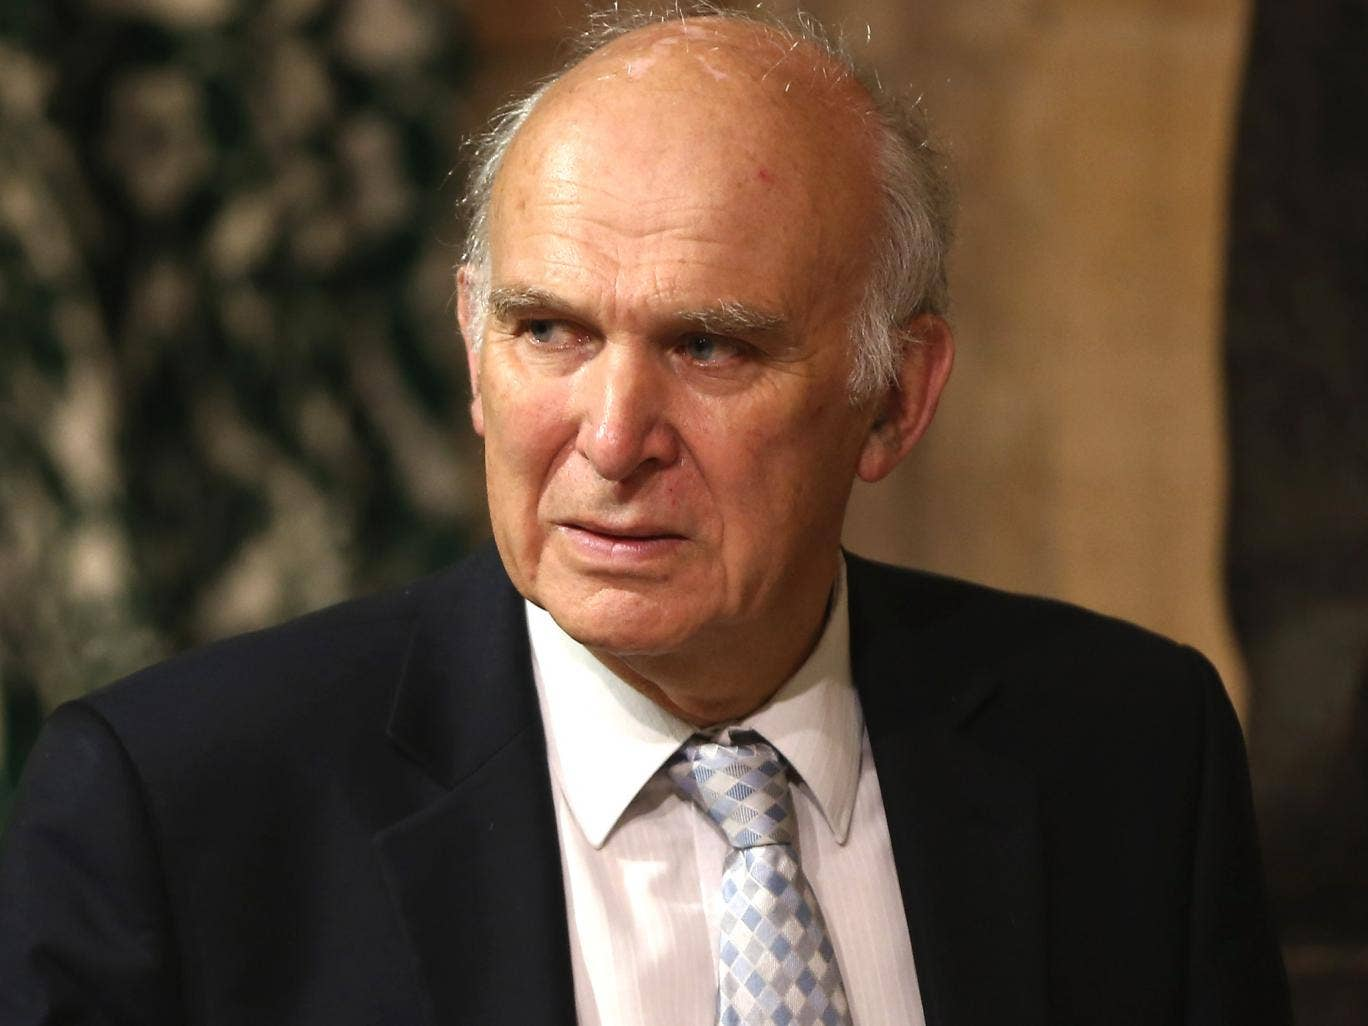 The SNP claim Vince Cable inadvertently spelt out a key reason why Scots should vote Yes to independence